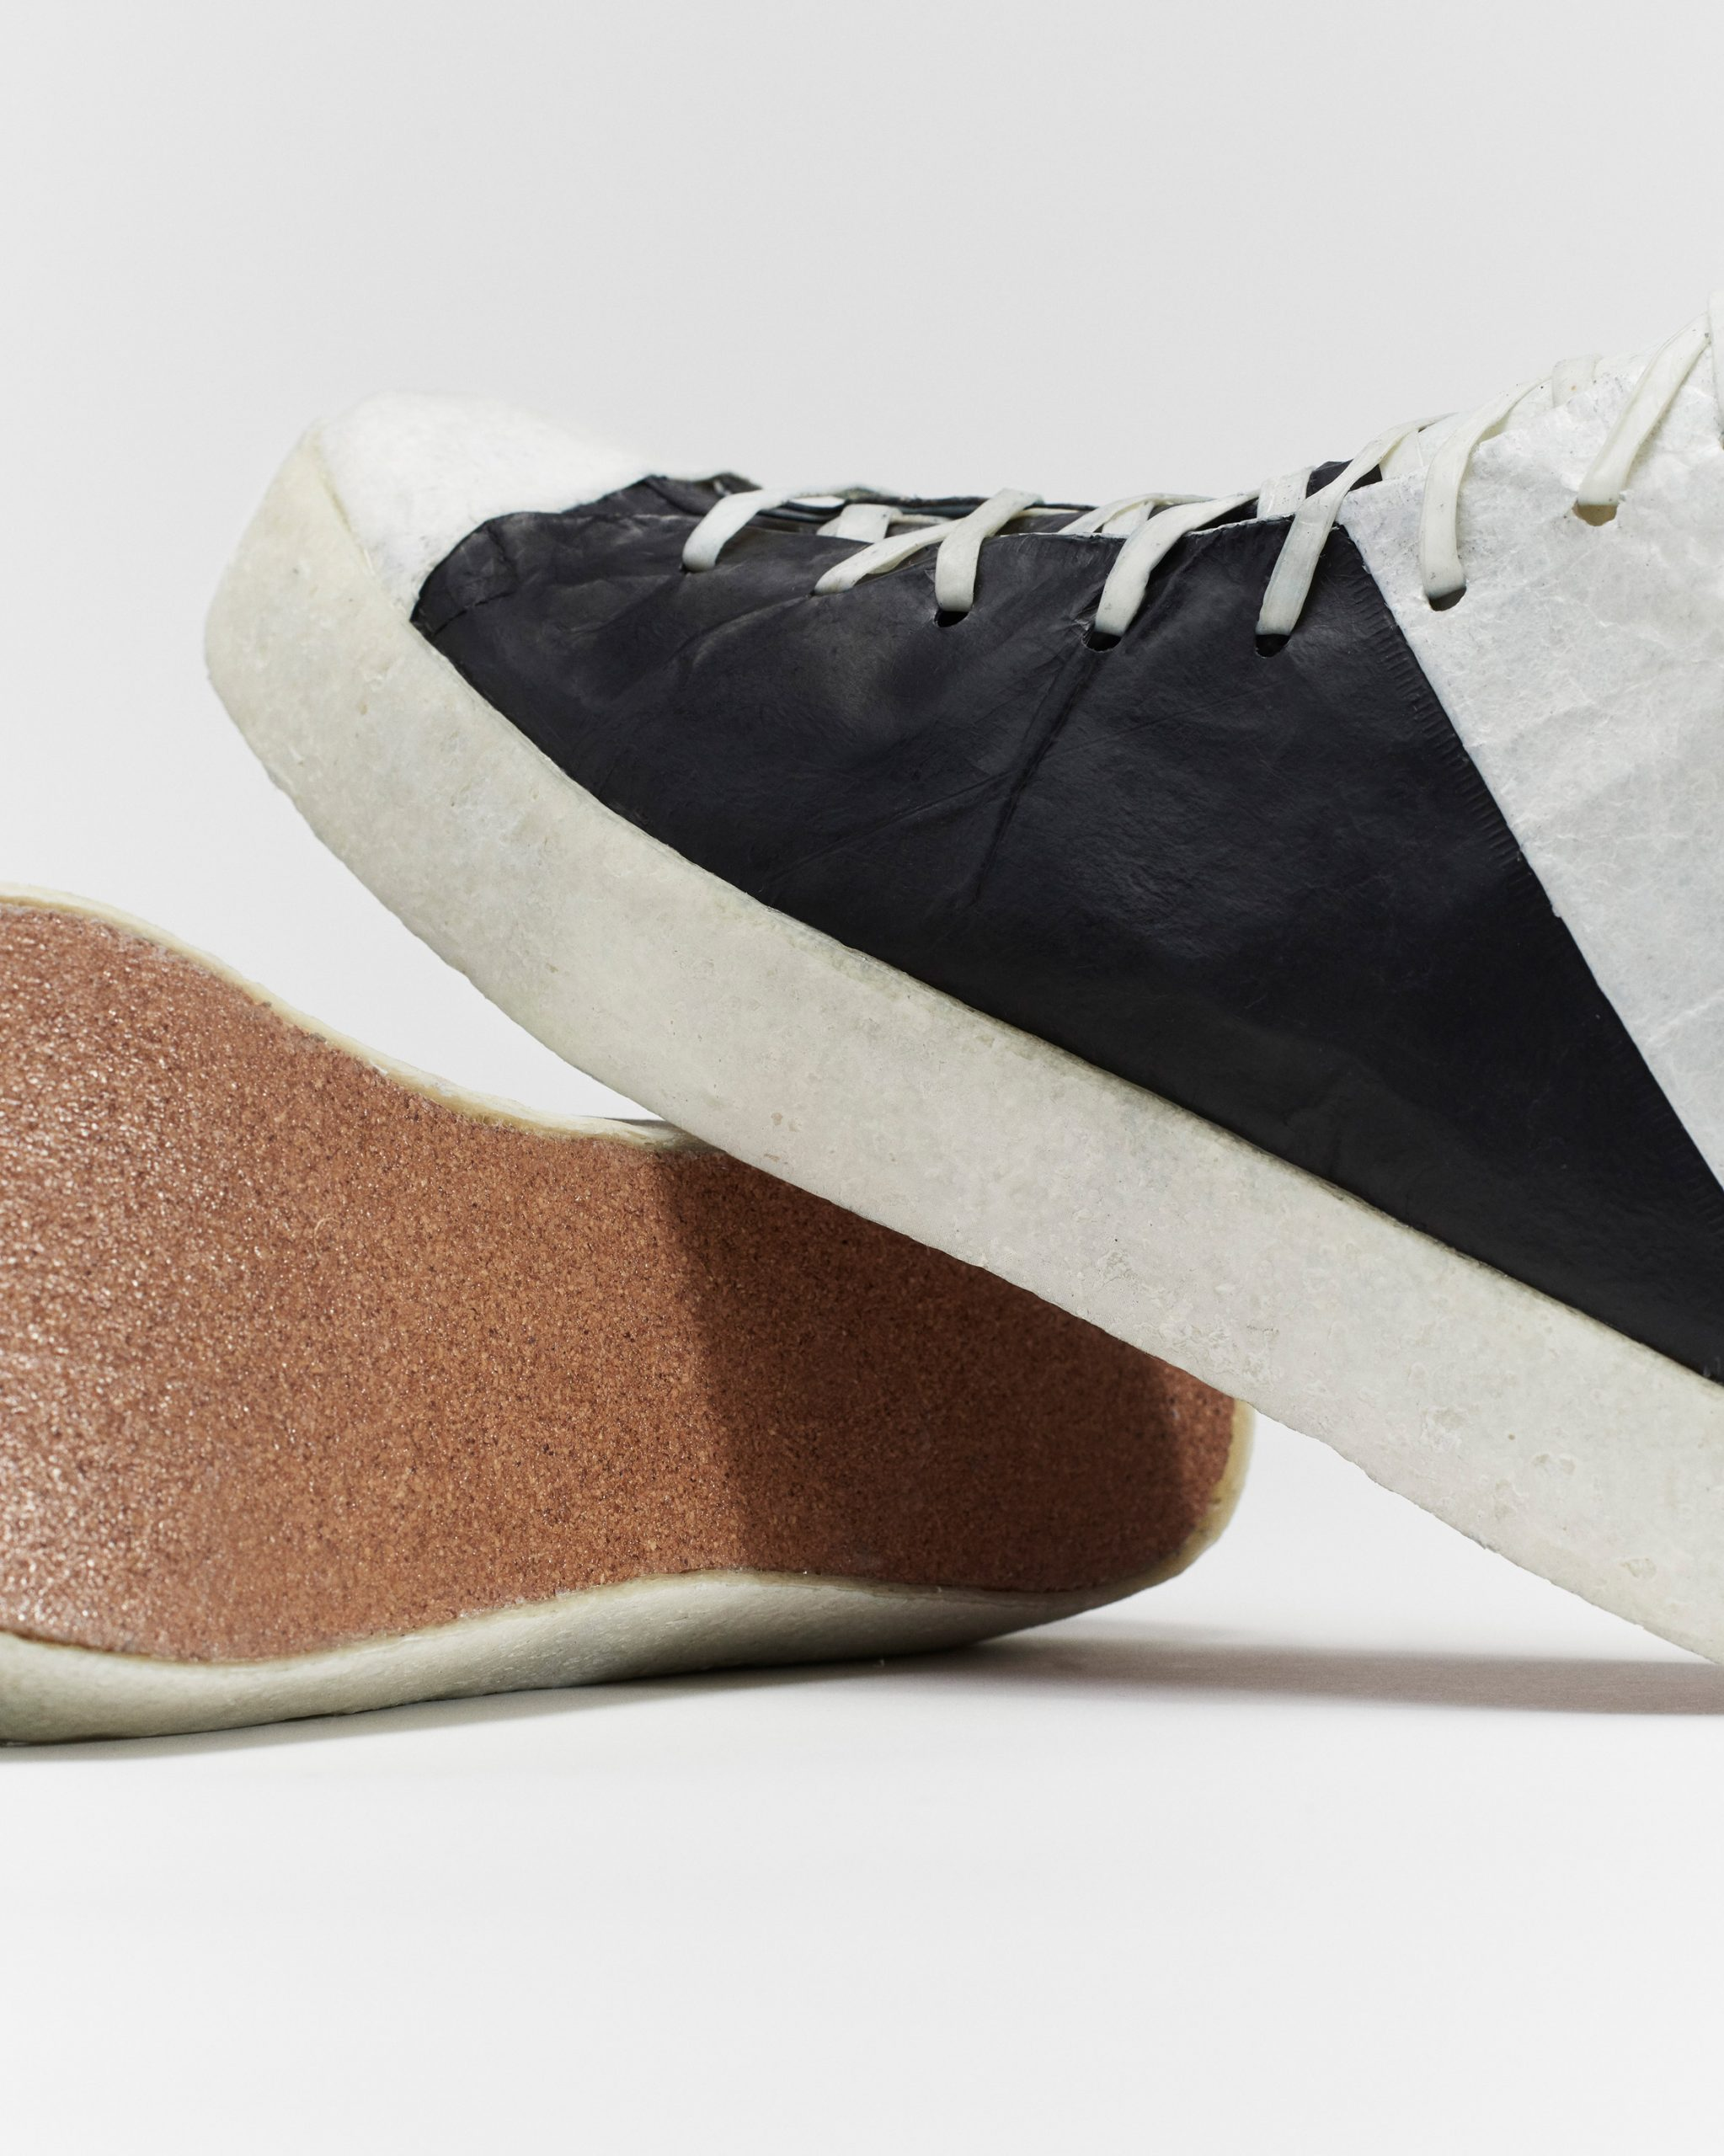 Close-up and cork sole of trainers designed by Public School and Theanne Schiros